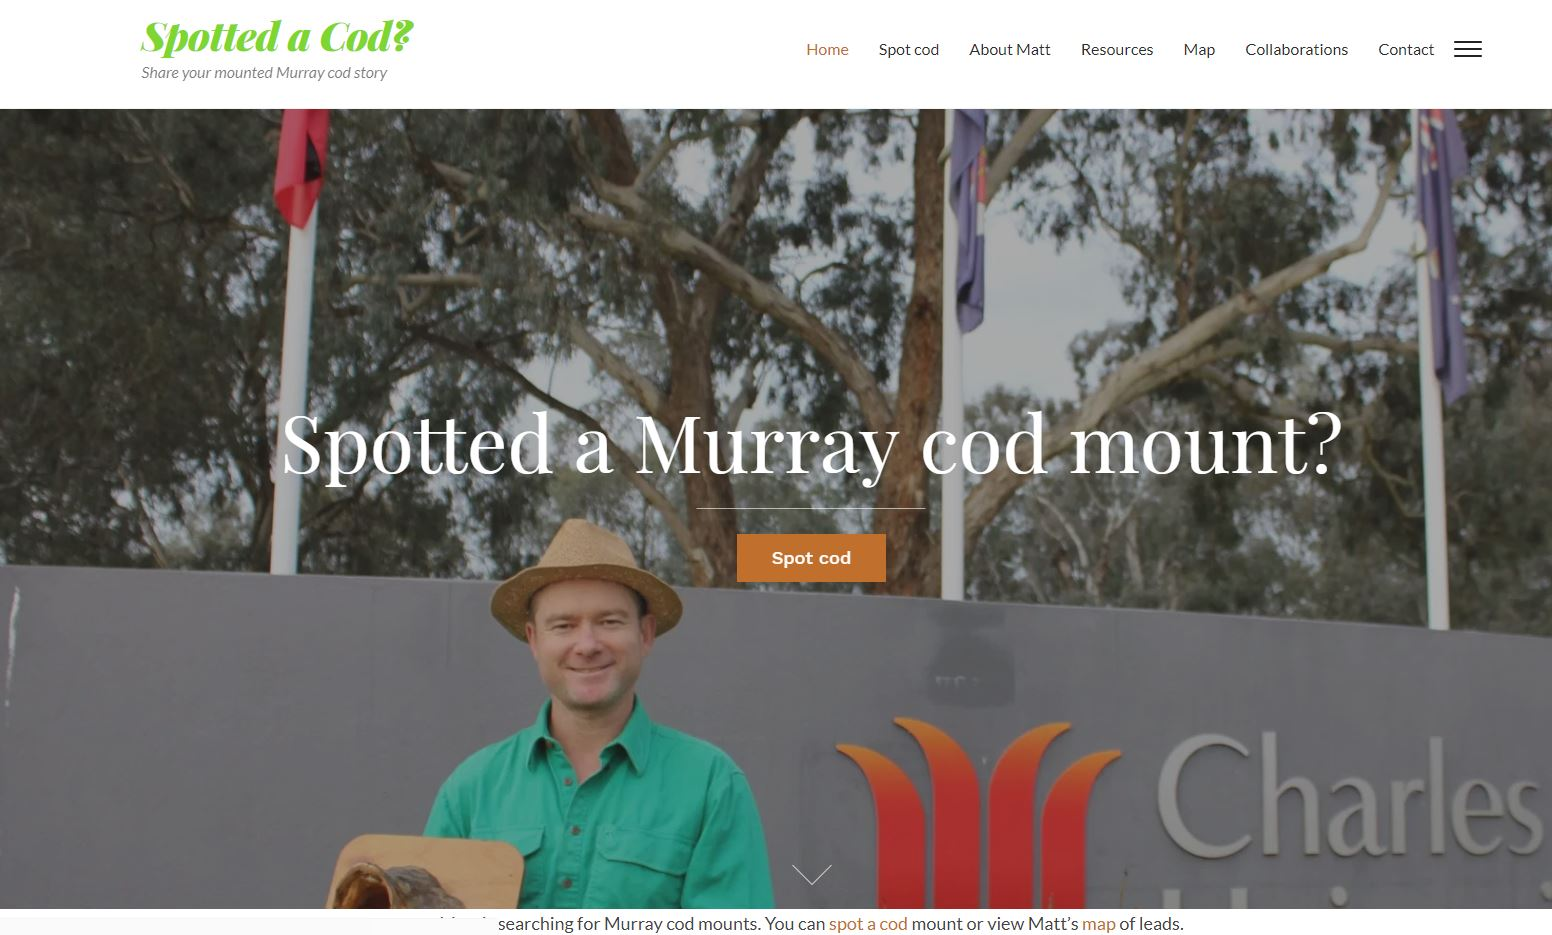 Spotted a Murray cod mount?